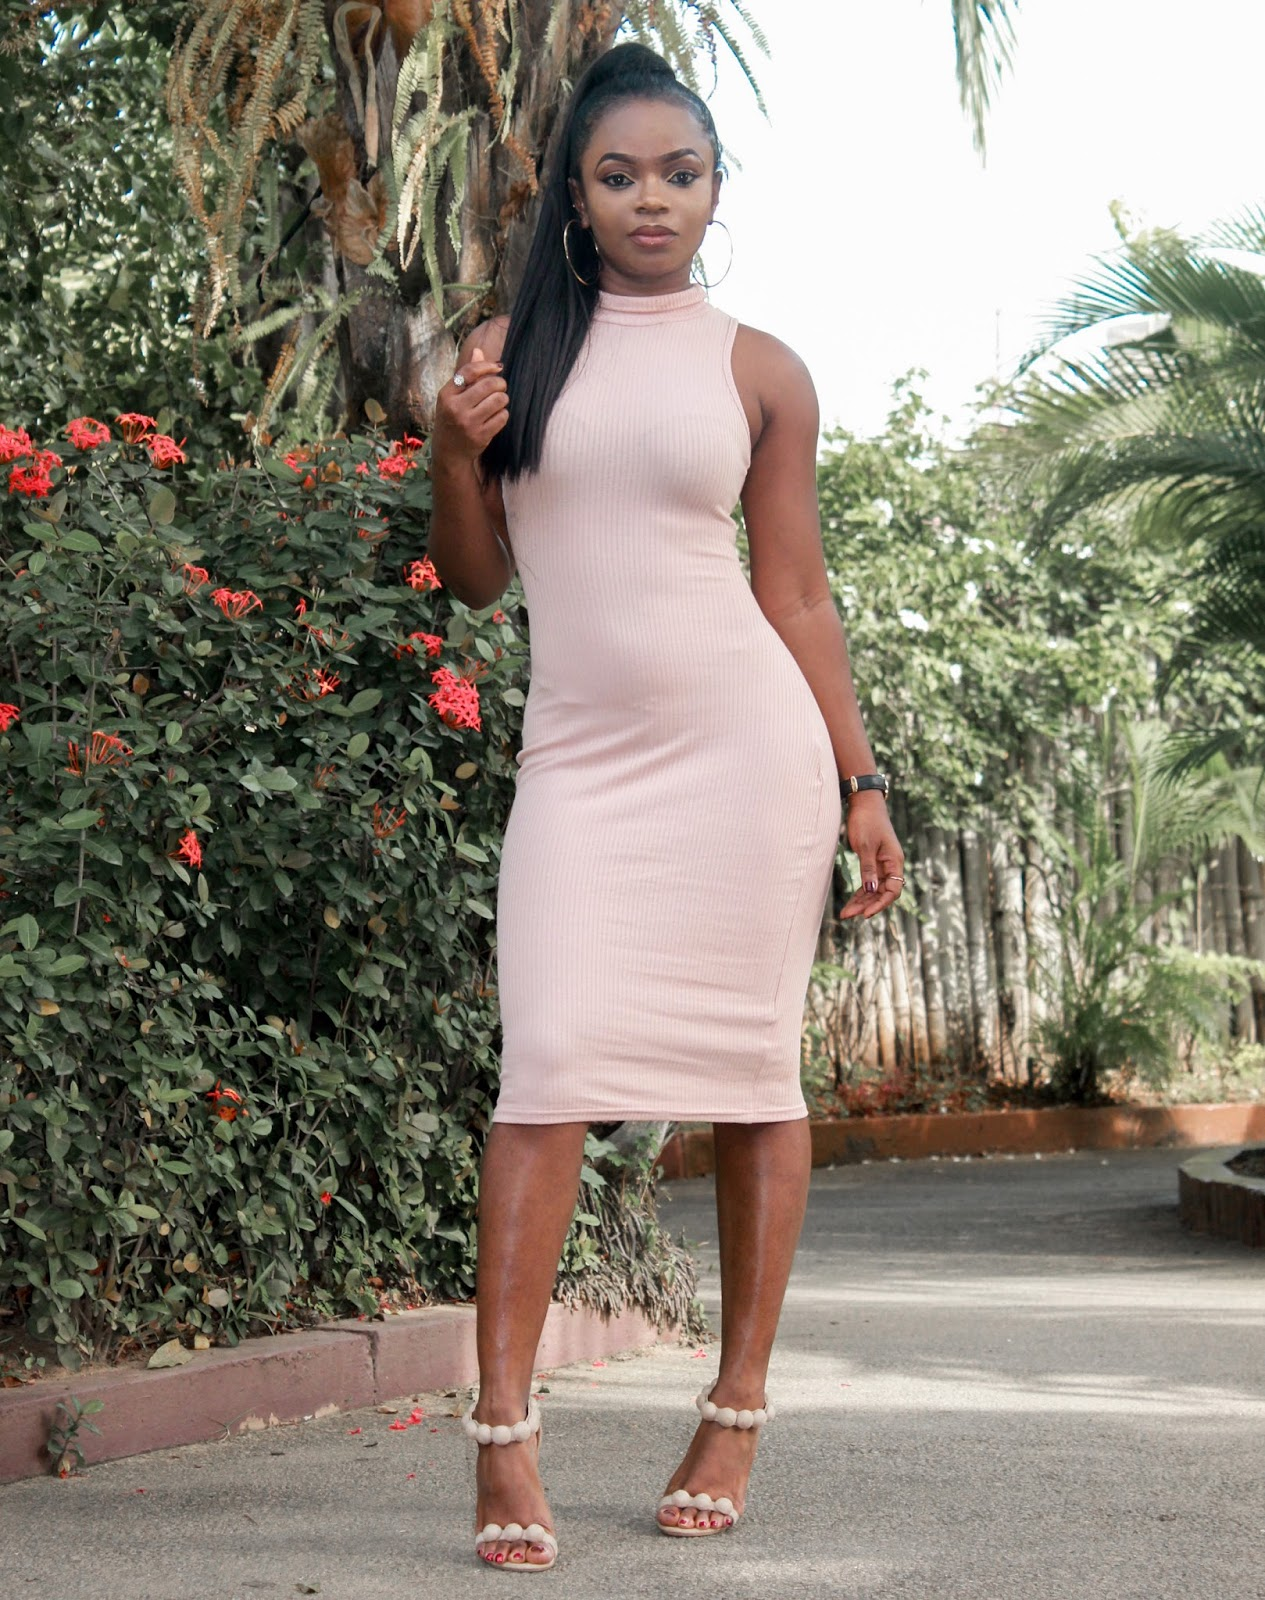 TURTLE-NECK BODYCON - Rosegal Pink Turtle-neck bodycon with Boohoo sandals